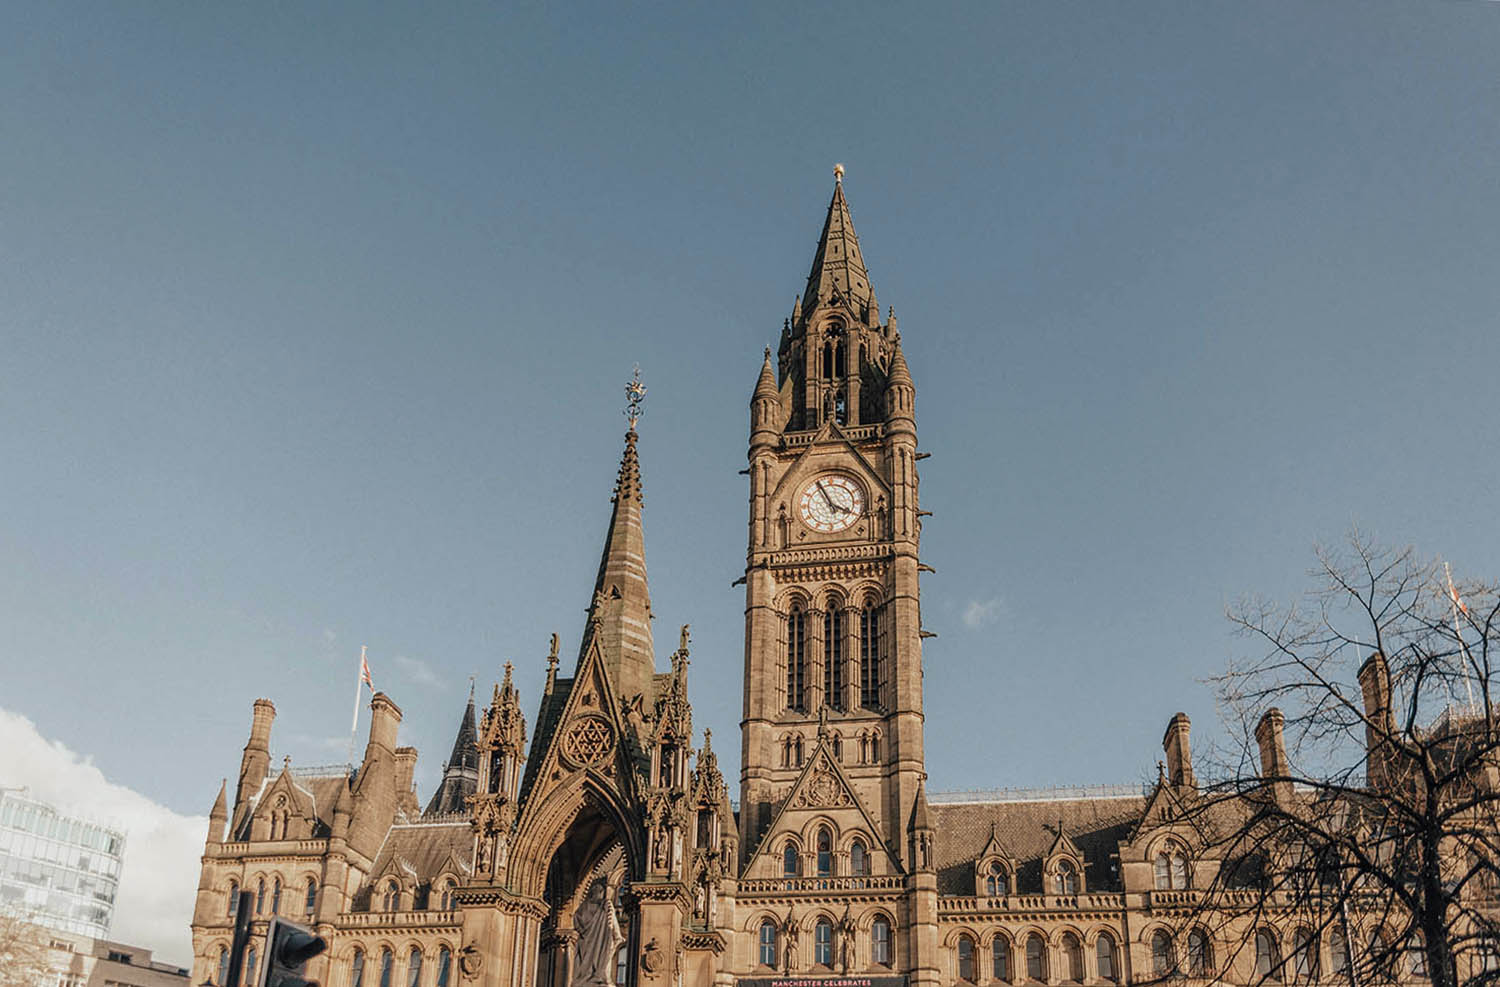 Manchester Town Hall in Albert Square